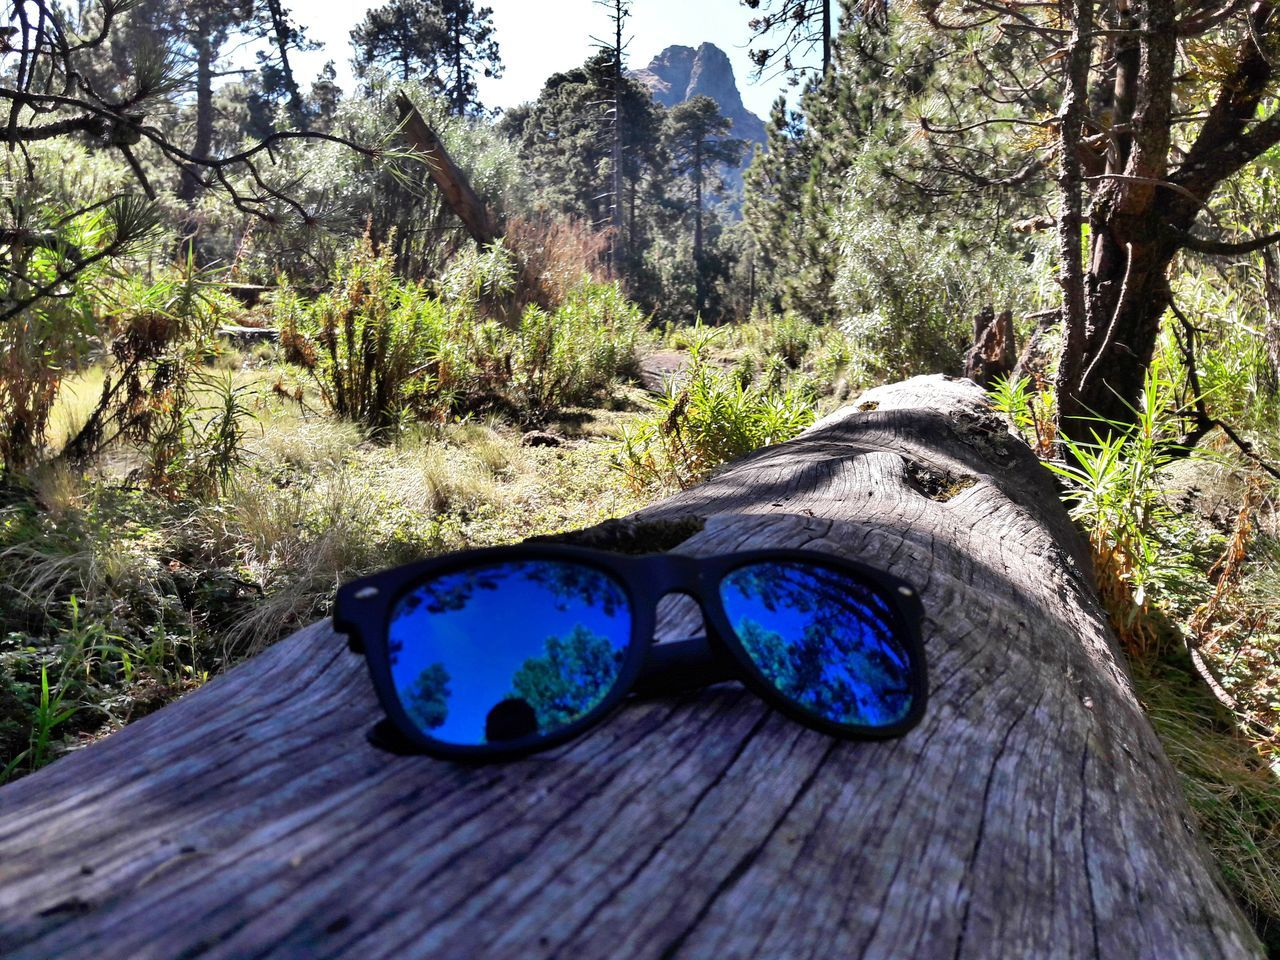 Tree Blue No People Outdoors Growth Day Nature Close-up Fine Art Tranquil Scene Eyem Best Shots Beauty In Nature My Year My View 2016♡ Forest Photography Eyem Best Shots Nature_collection Raiban Sunglasses ✌👌 Sunglasses👓 The Great Outdoors - 2017 EyeEm Awards